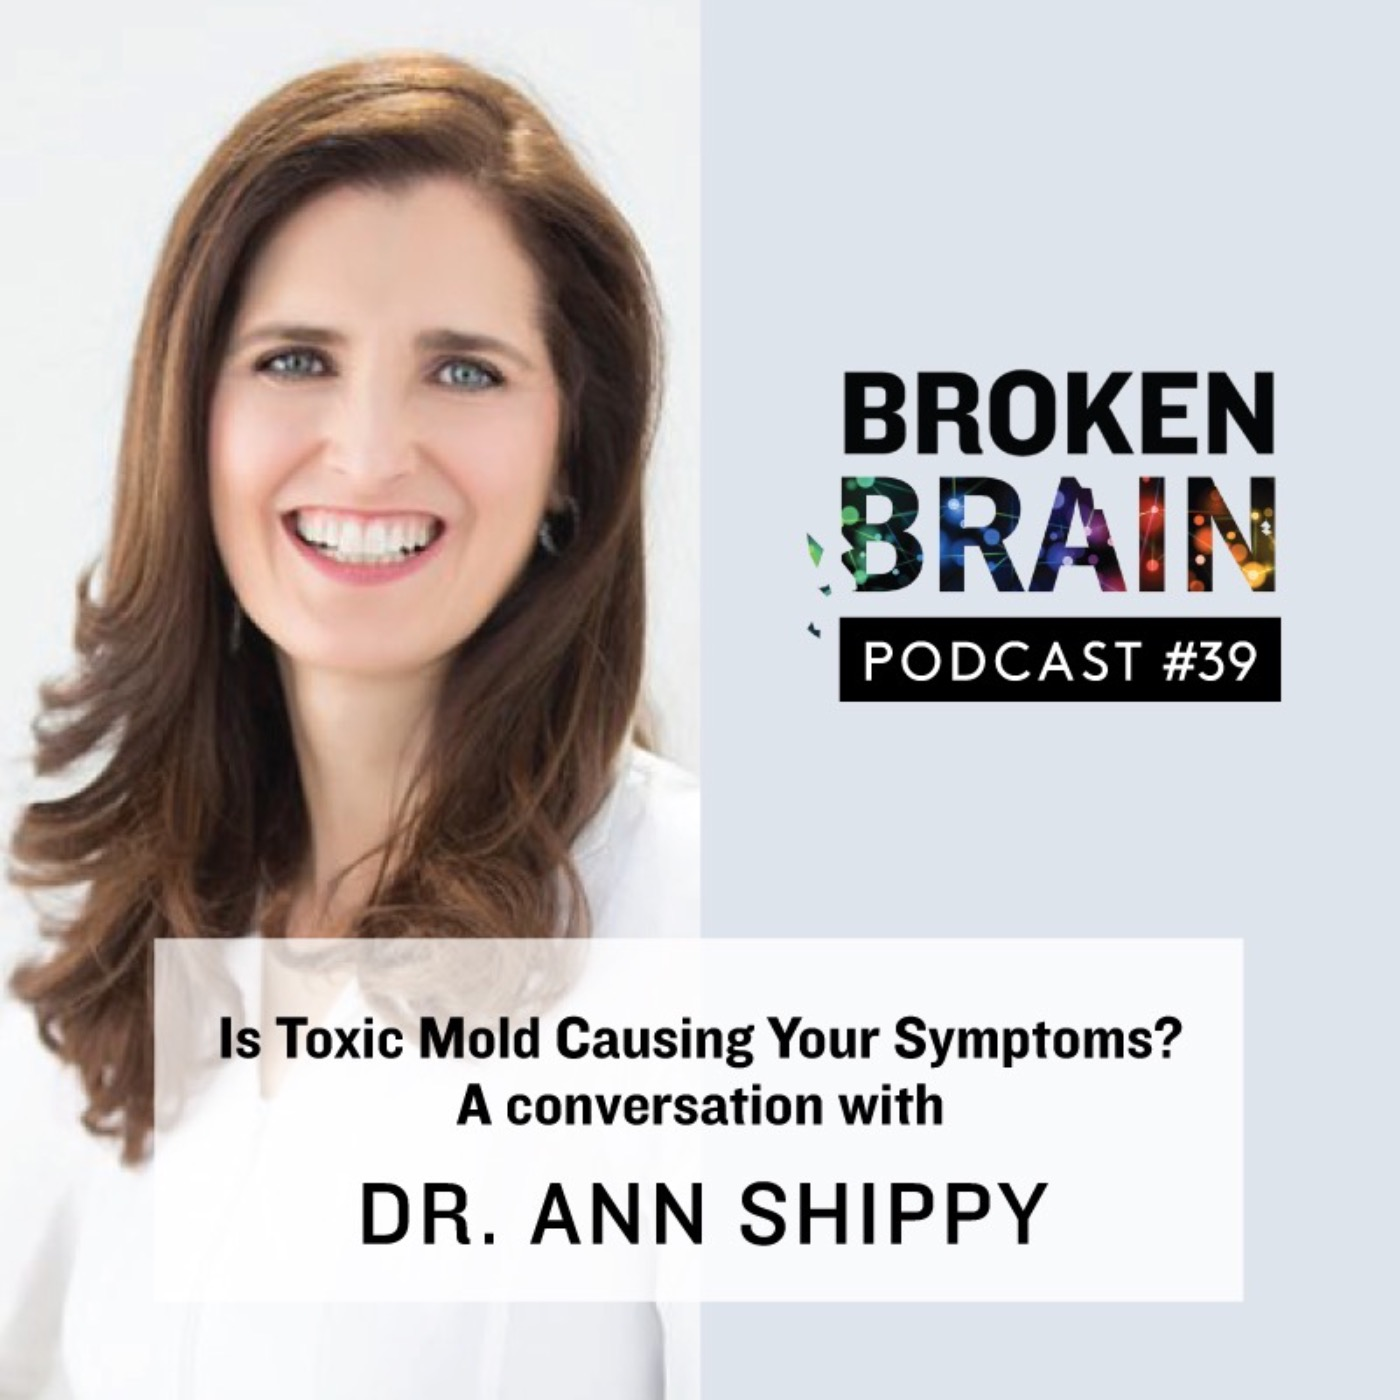 #39: Is Toxic Mold Causing Your Symptoms? A Conversation with Dr. Ann Shippy